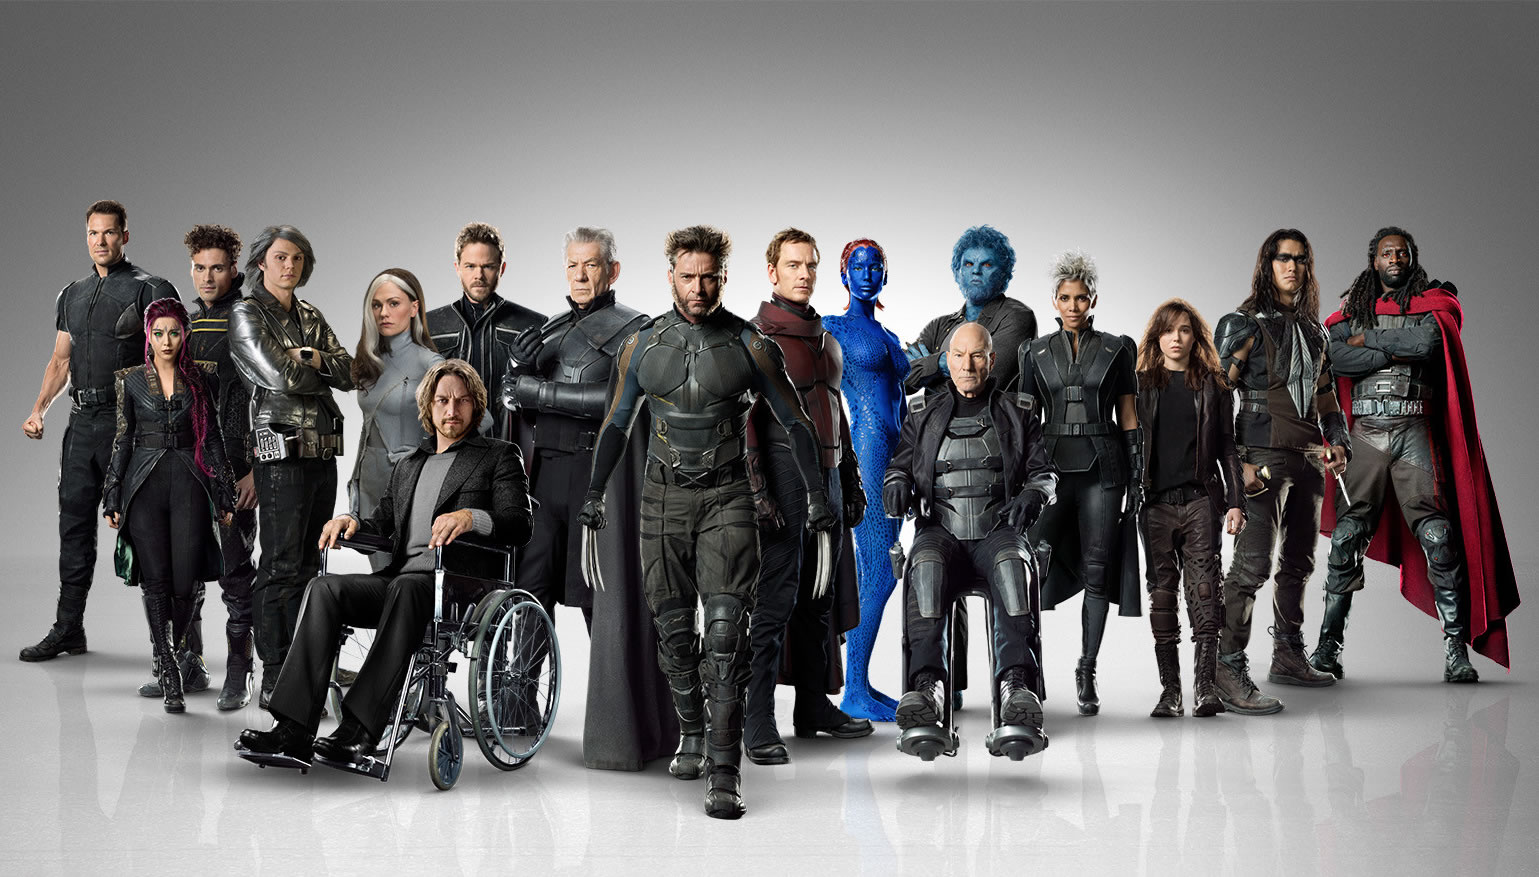 All the characters from X-Men DOFP